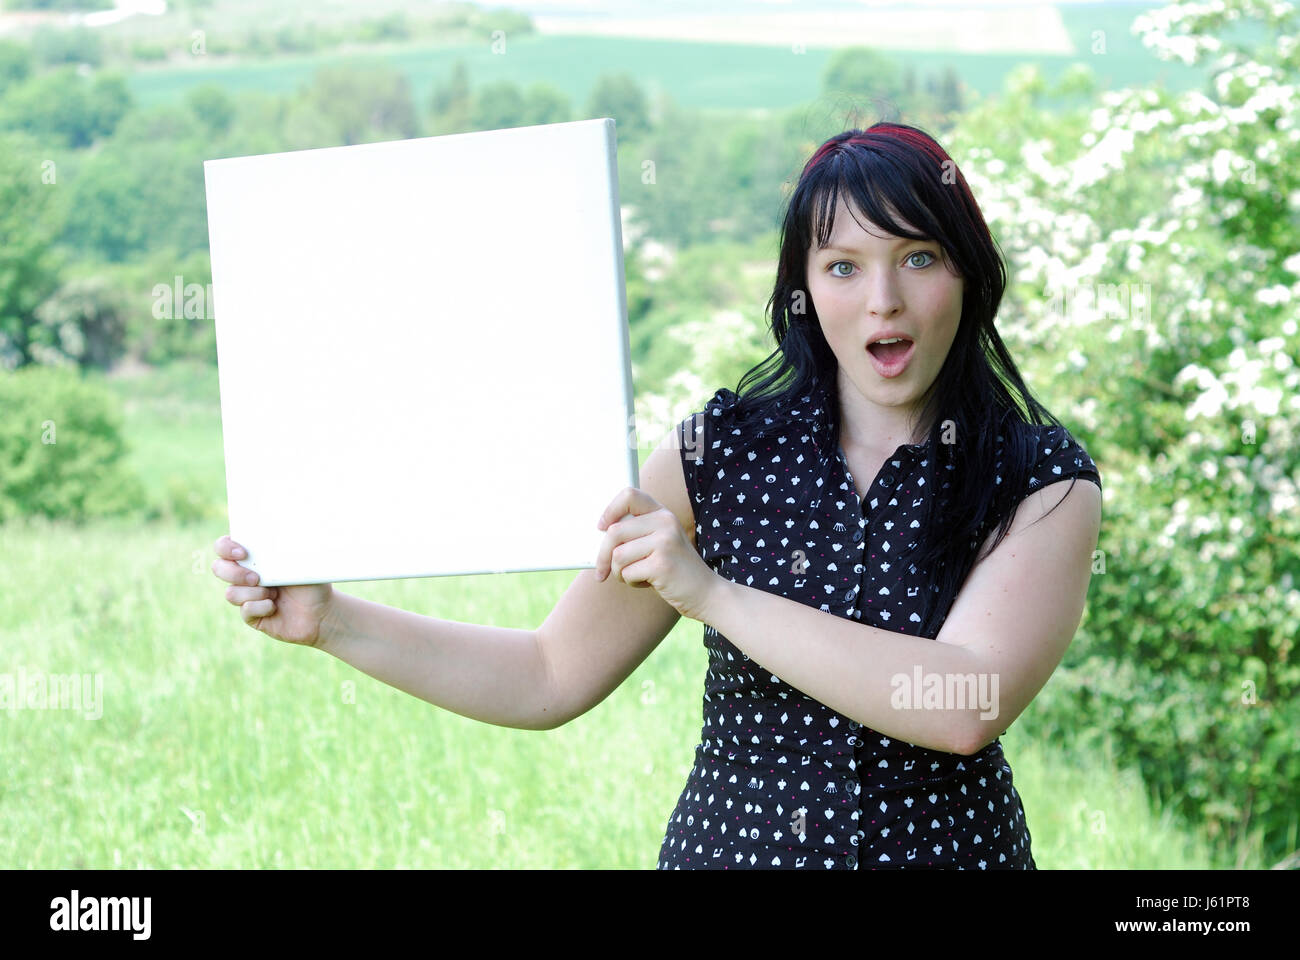 woman location shot wonder shield surprise publicity advertising surprised Stock Photo